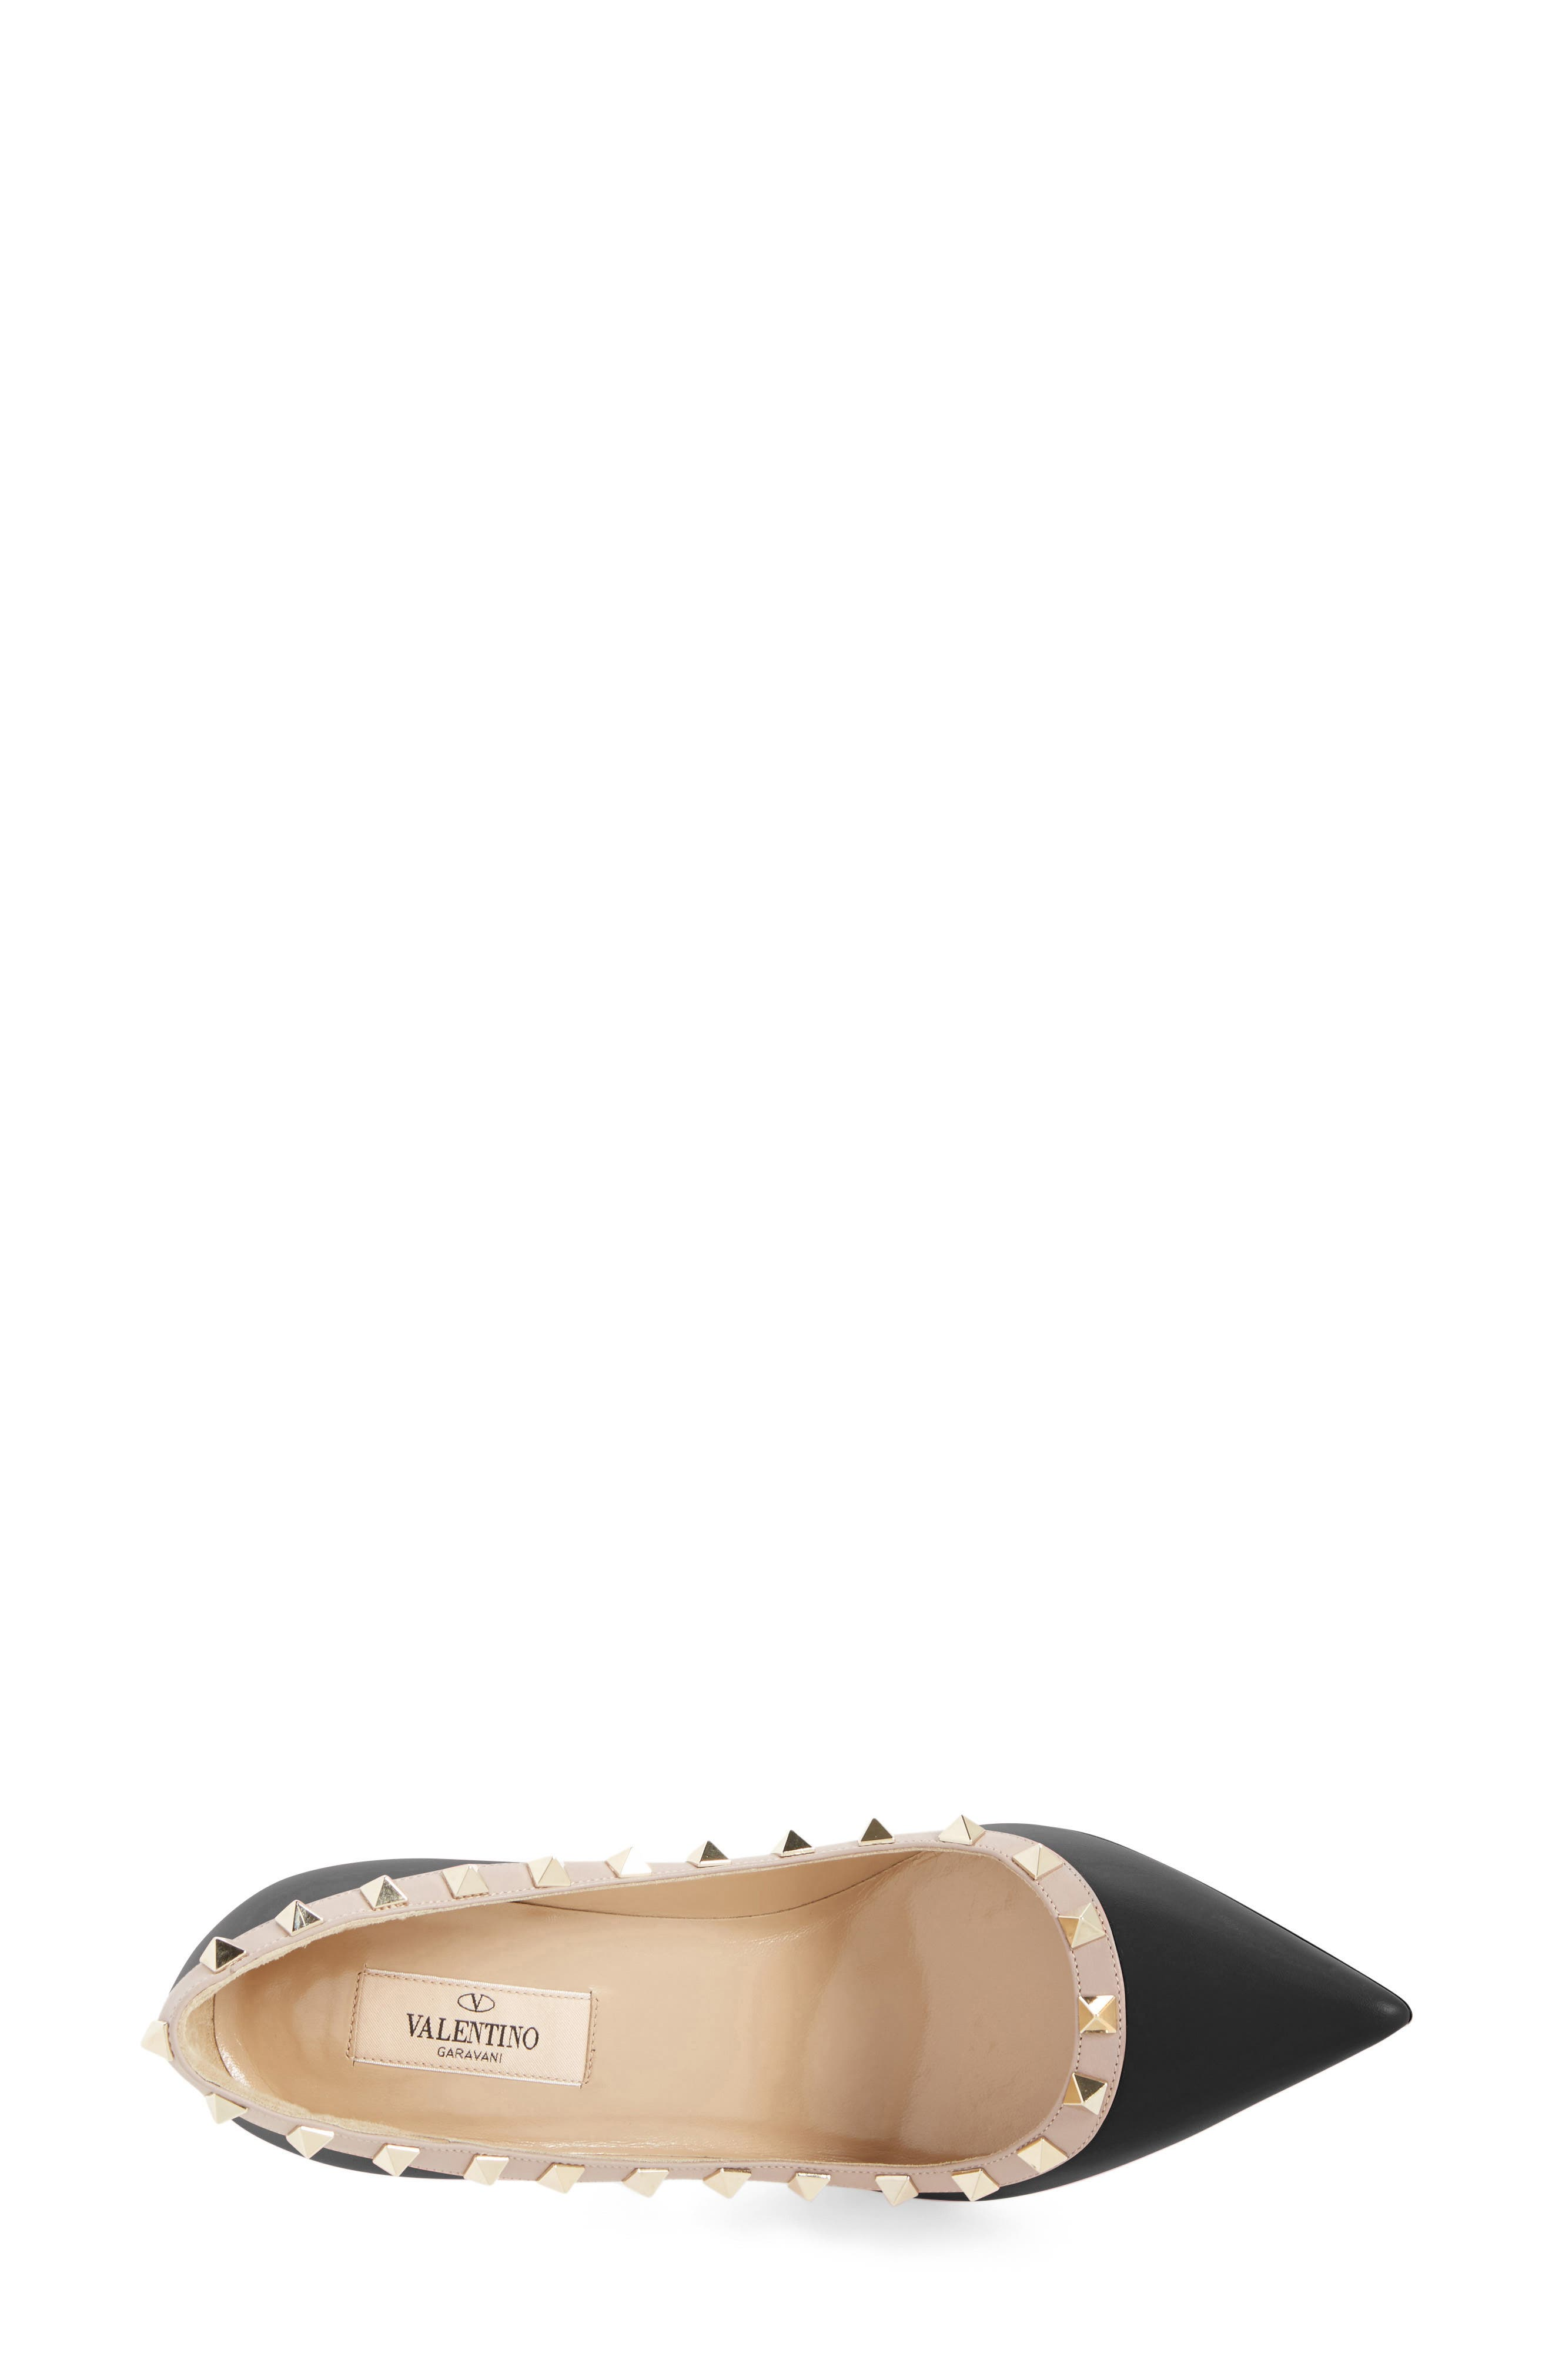 Rockstud Pointed Pump,                             Alternate thumbnail 3, color,                             Black/ Nude Leather